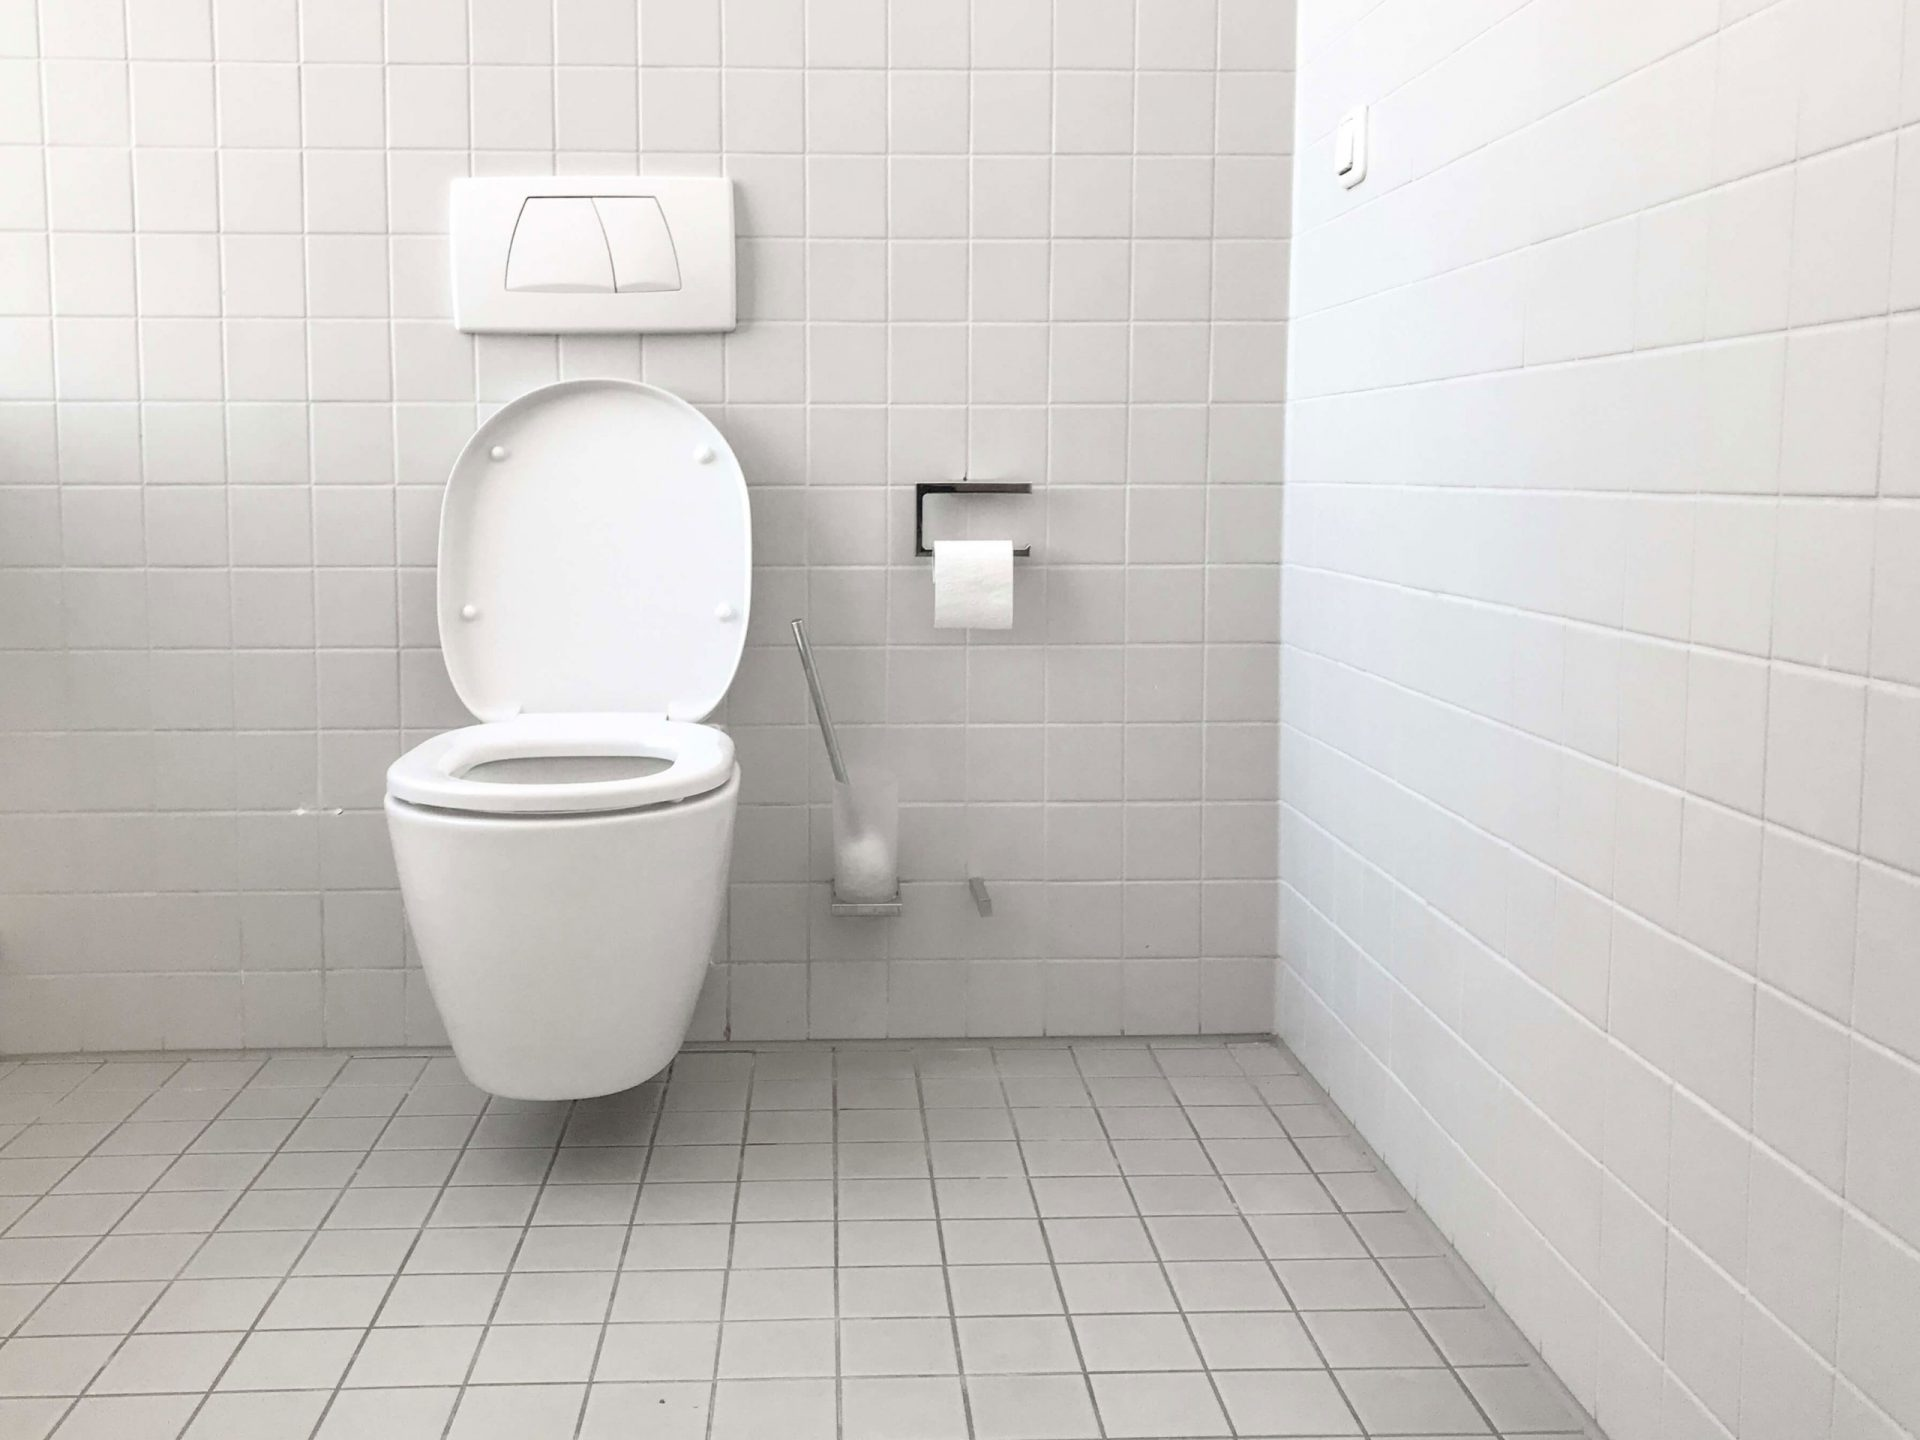 How to Avoid Blocked Sewer Pipes in Public Toilets